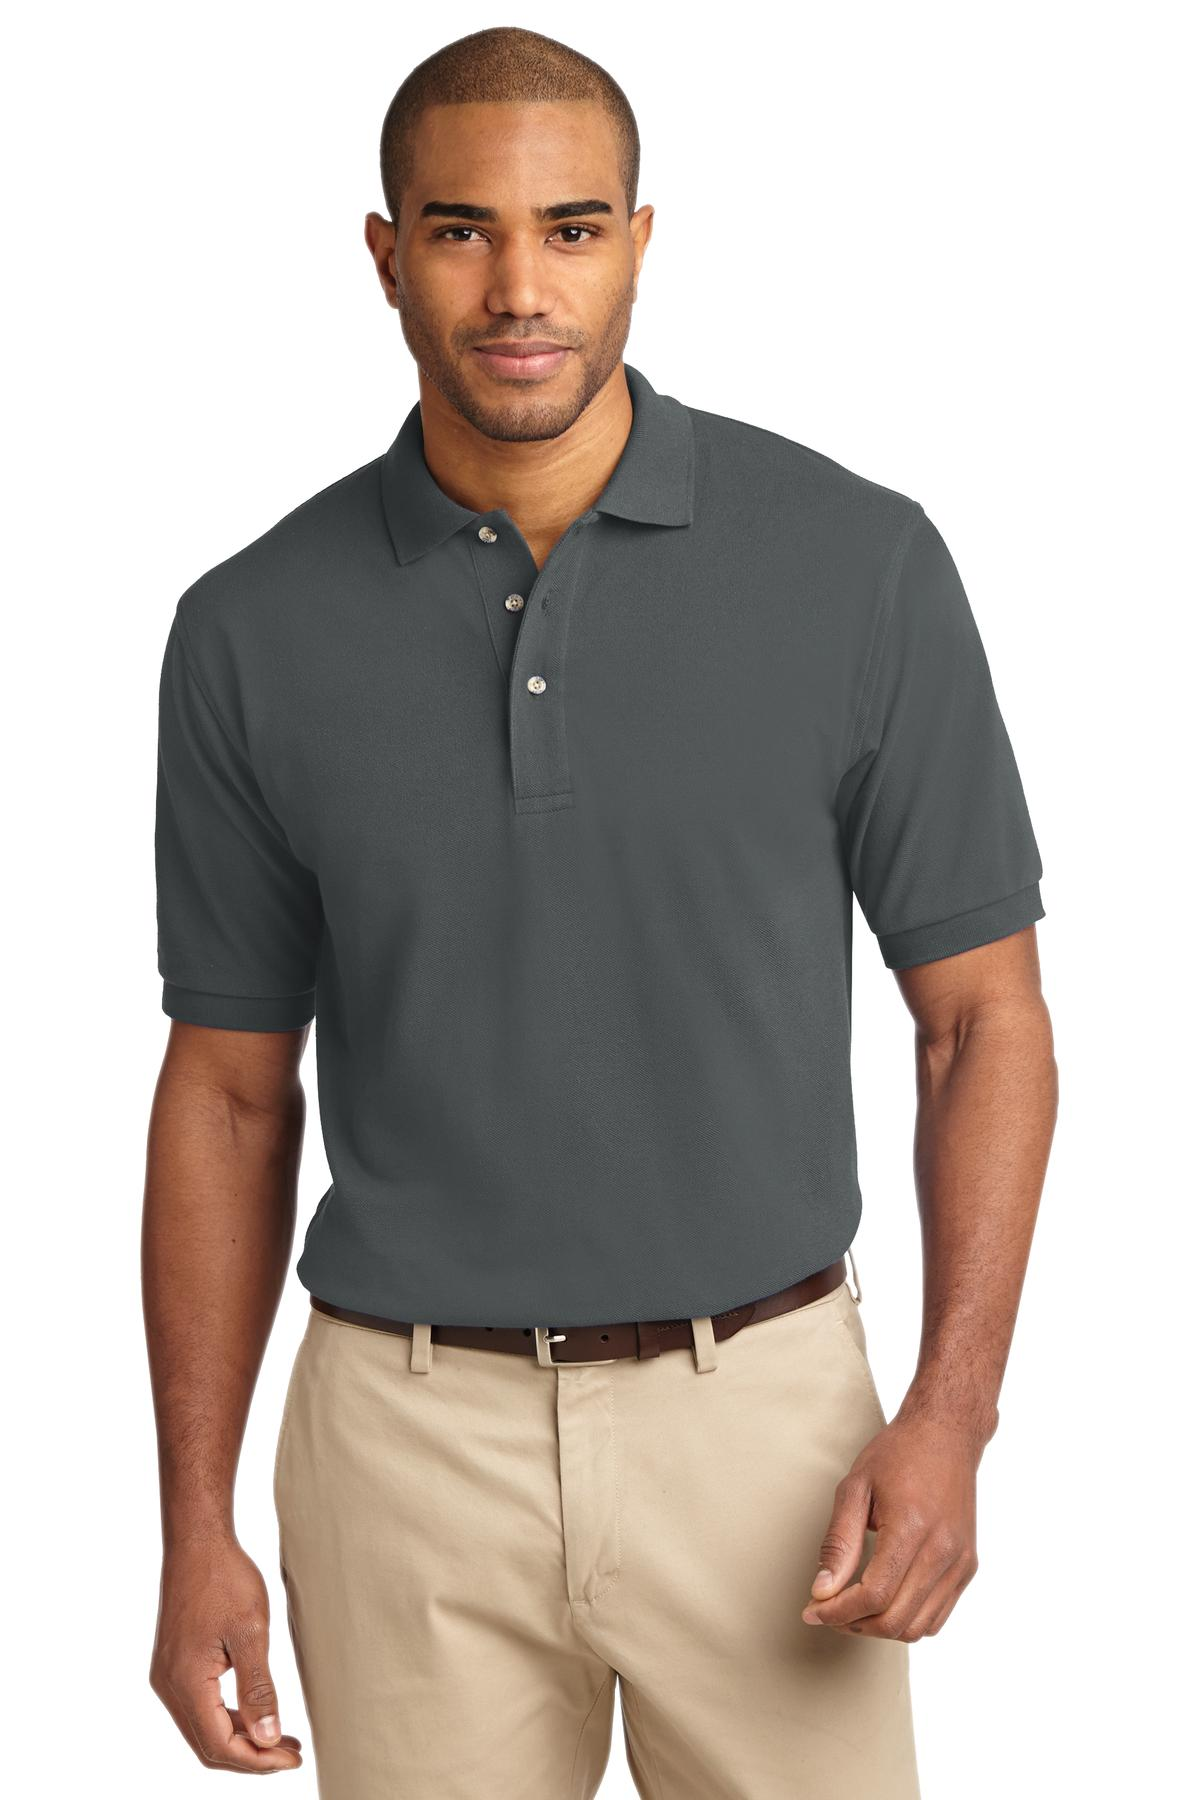 Port Authority ®  Heavyweight Cotton Pique Polo.  K420 - Steel Grey